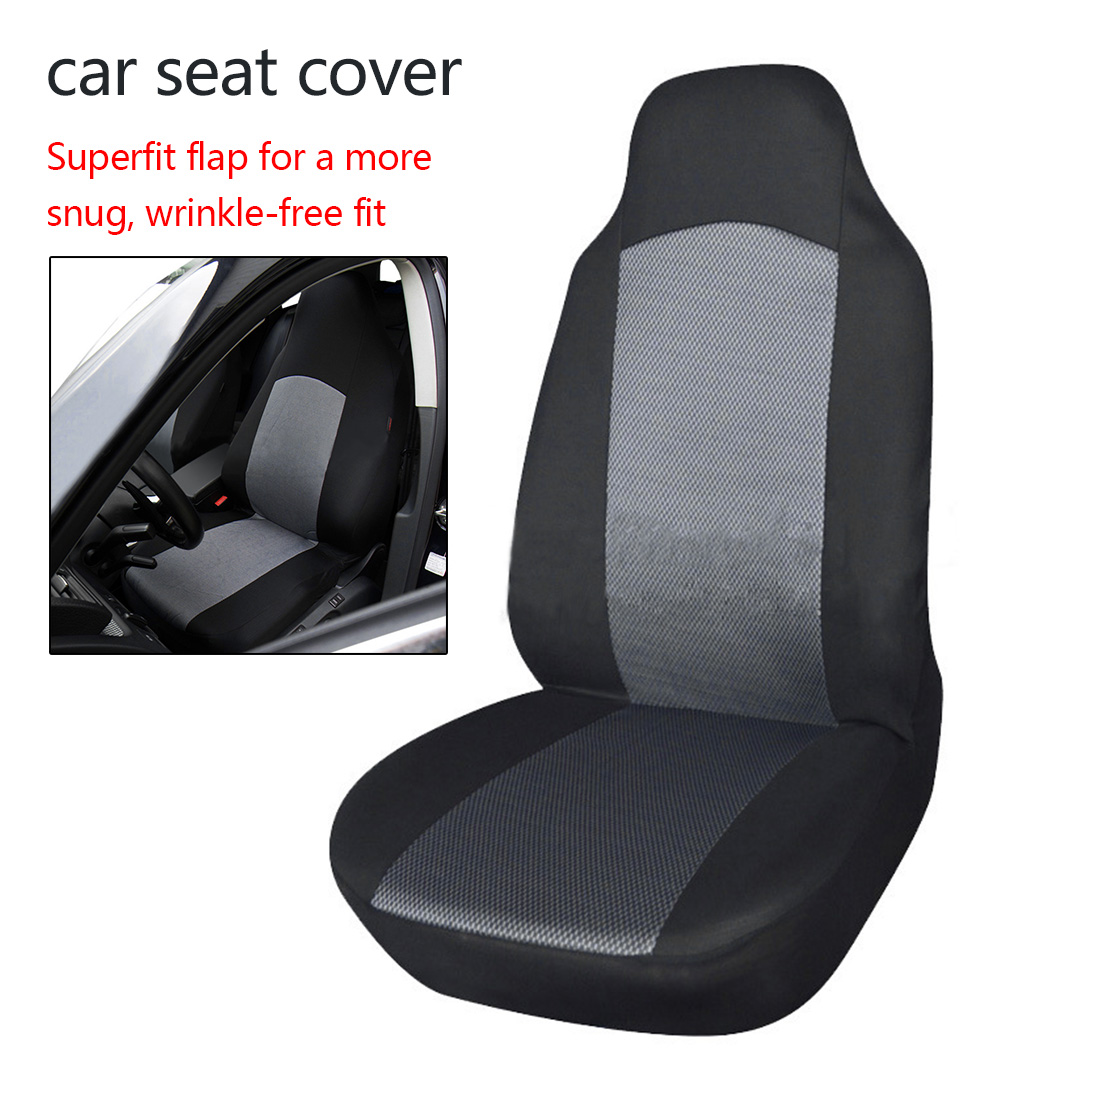 Dewtreetali Universal Front Seat Cover Sandwich Fabric Fit for Bucket Seat Breathable Car Seat Protector Black Car Accessories